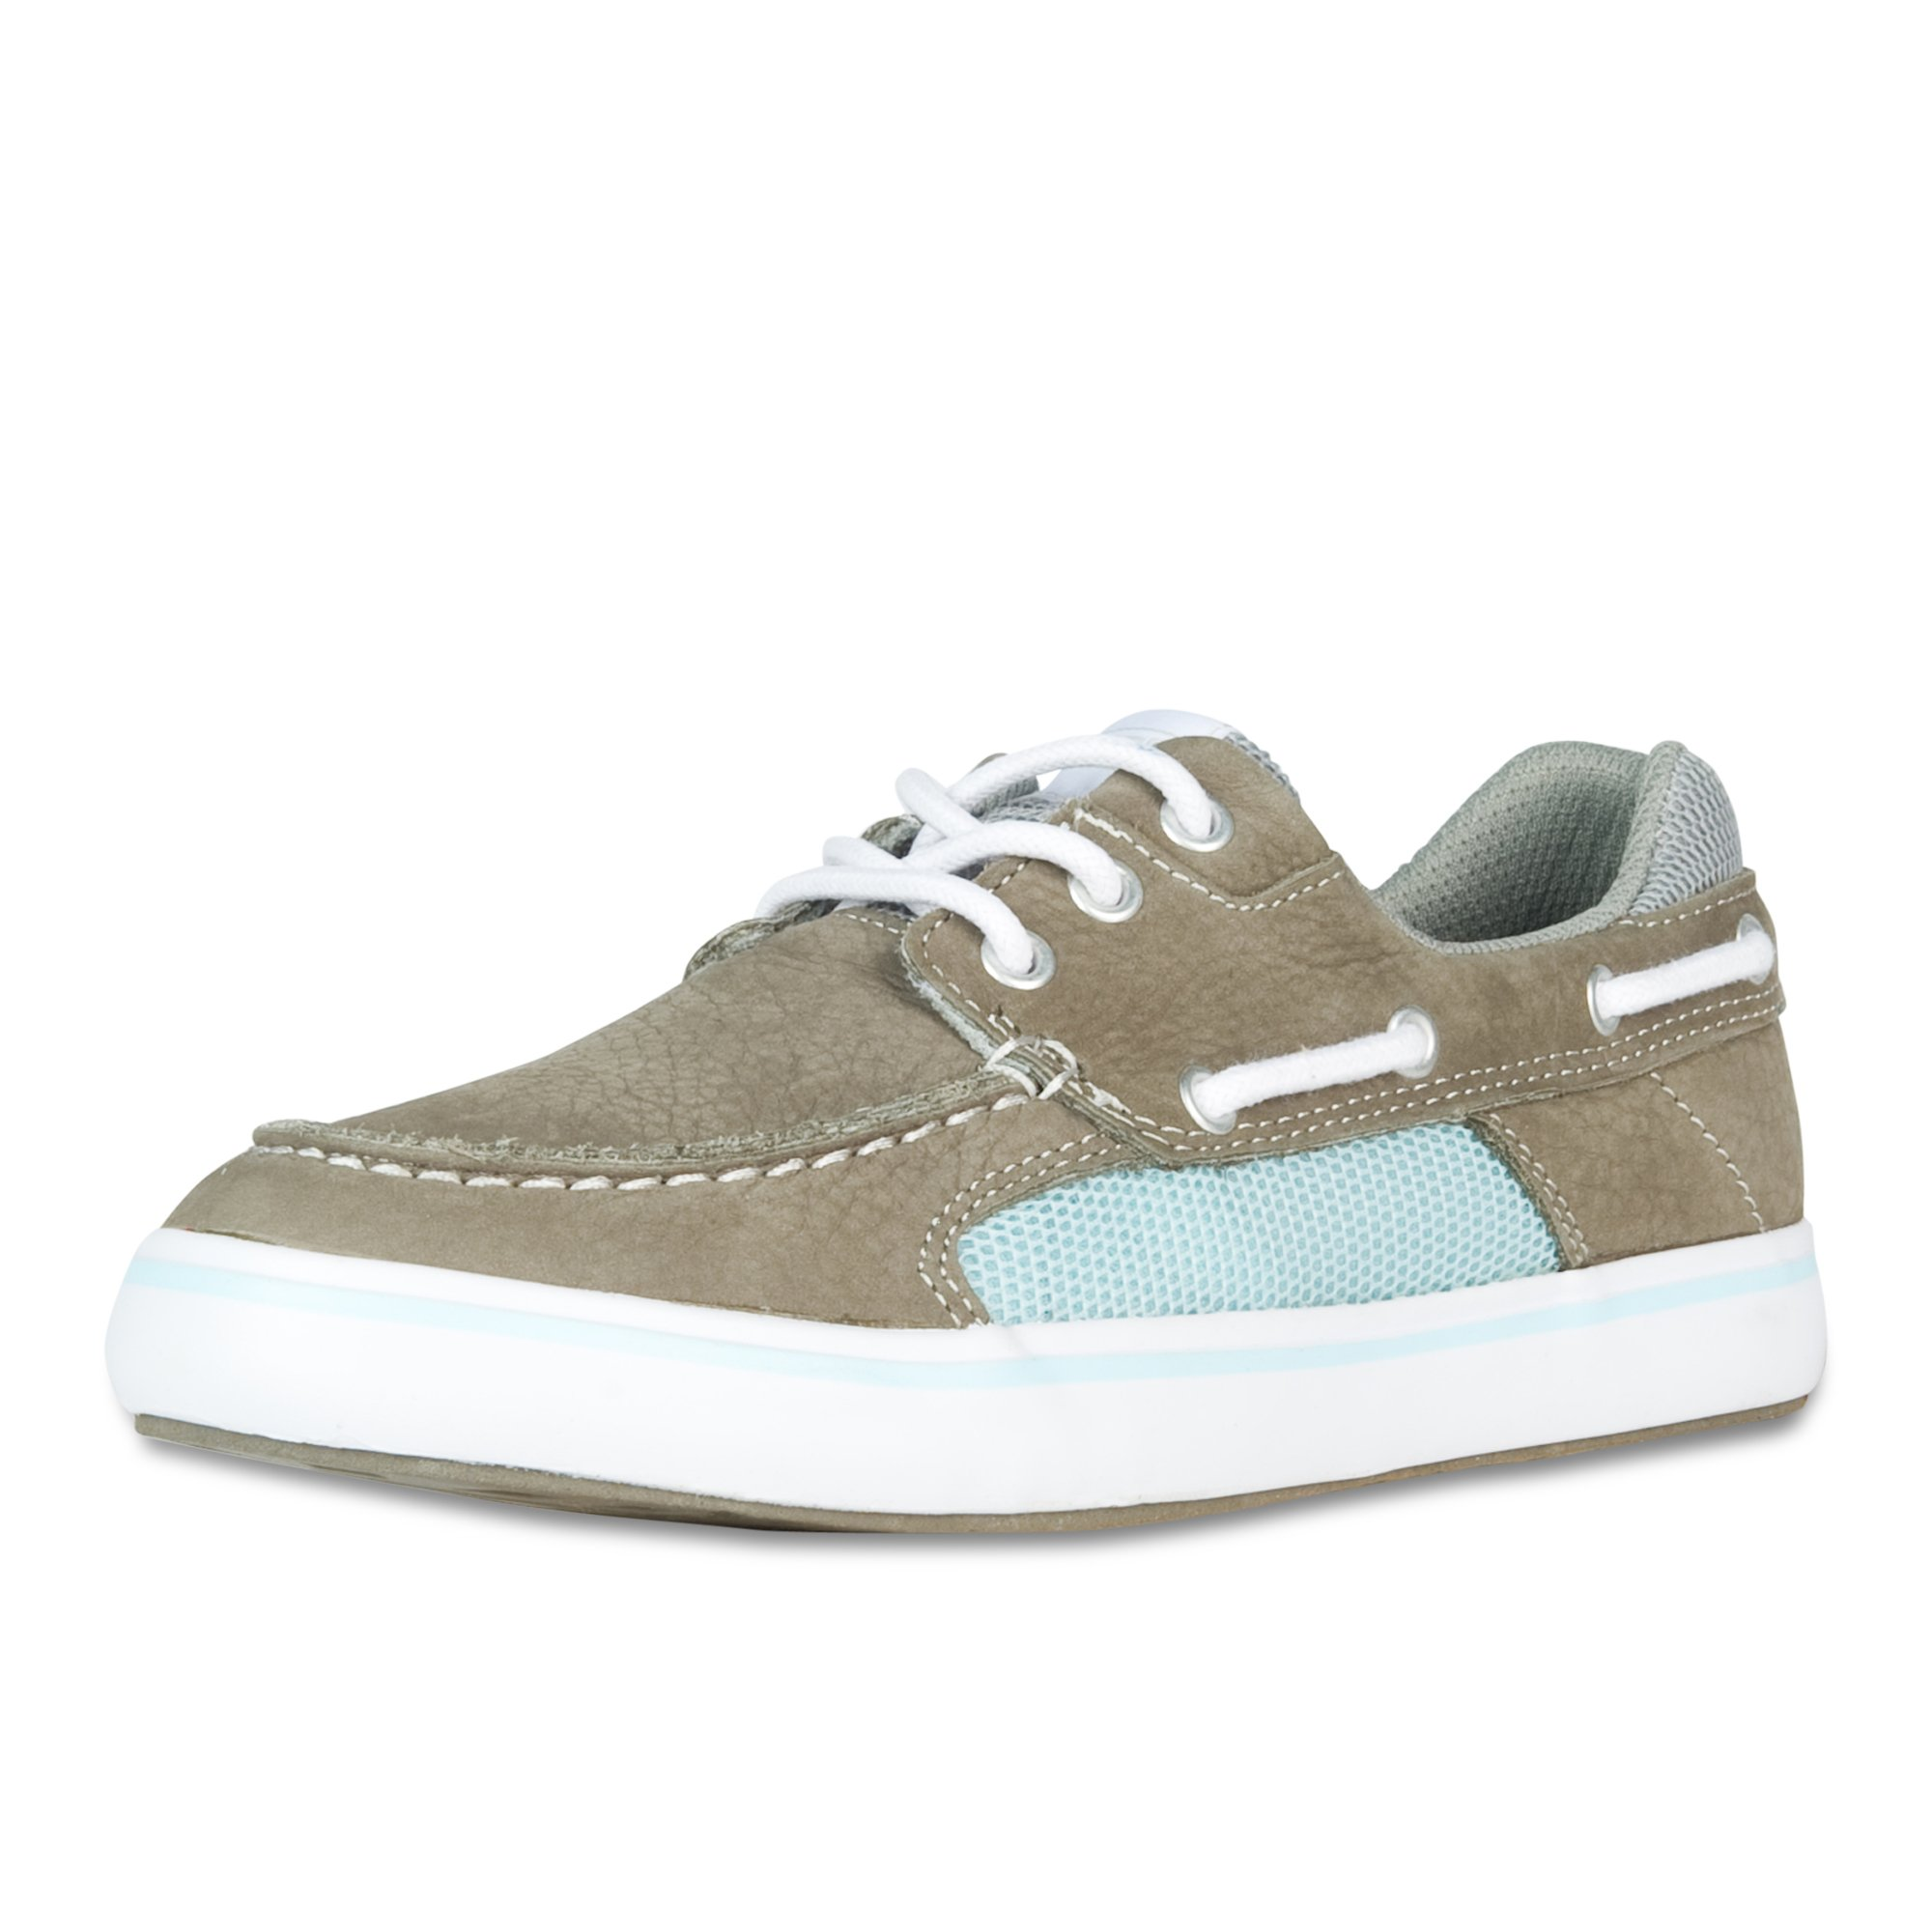 XTRATUF Finatic II Women's Leather Deck Shoes, Gray & Blue (22310)